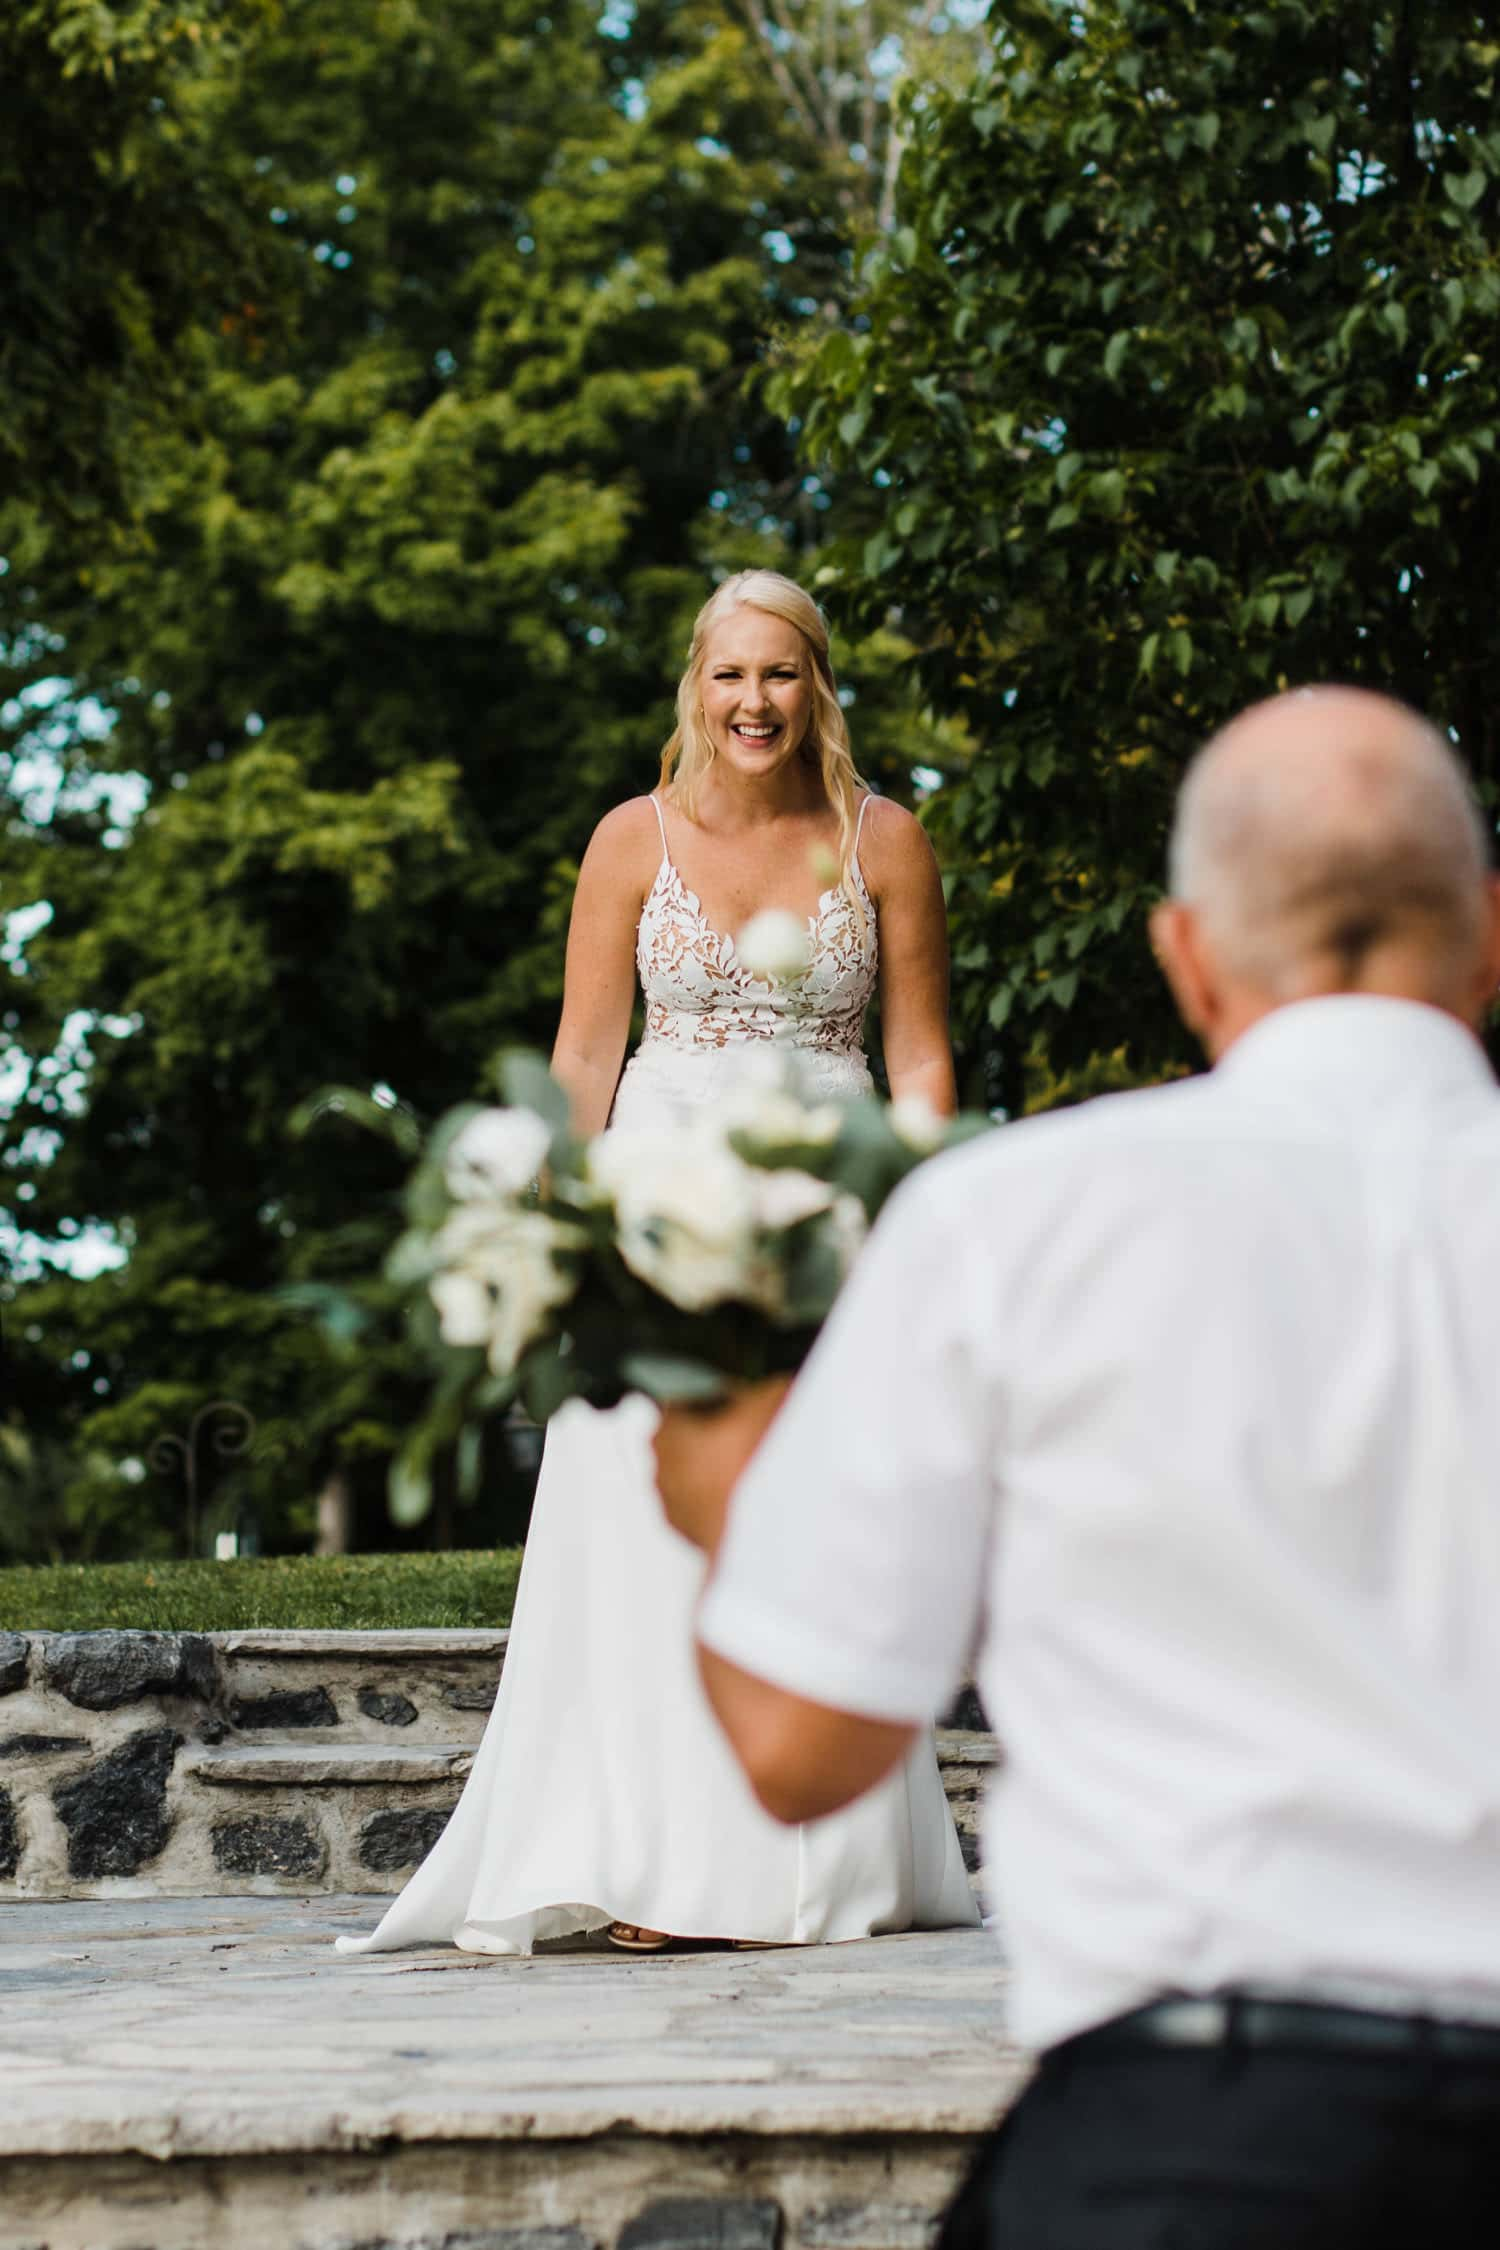 bride's father sees her at outdoor surprise wedding